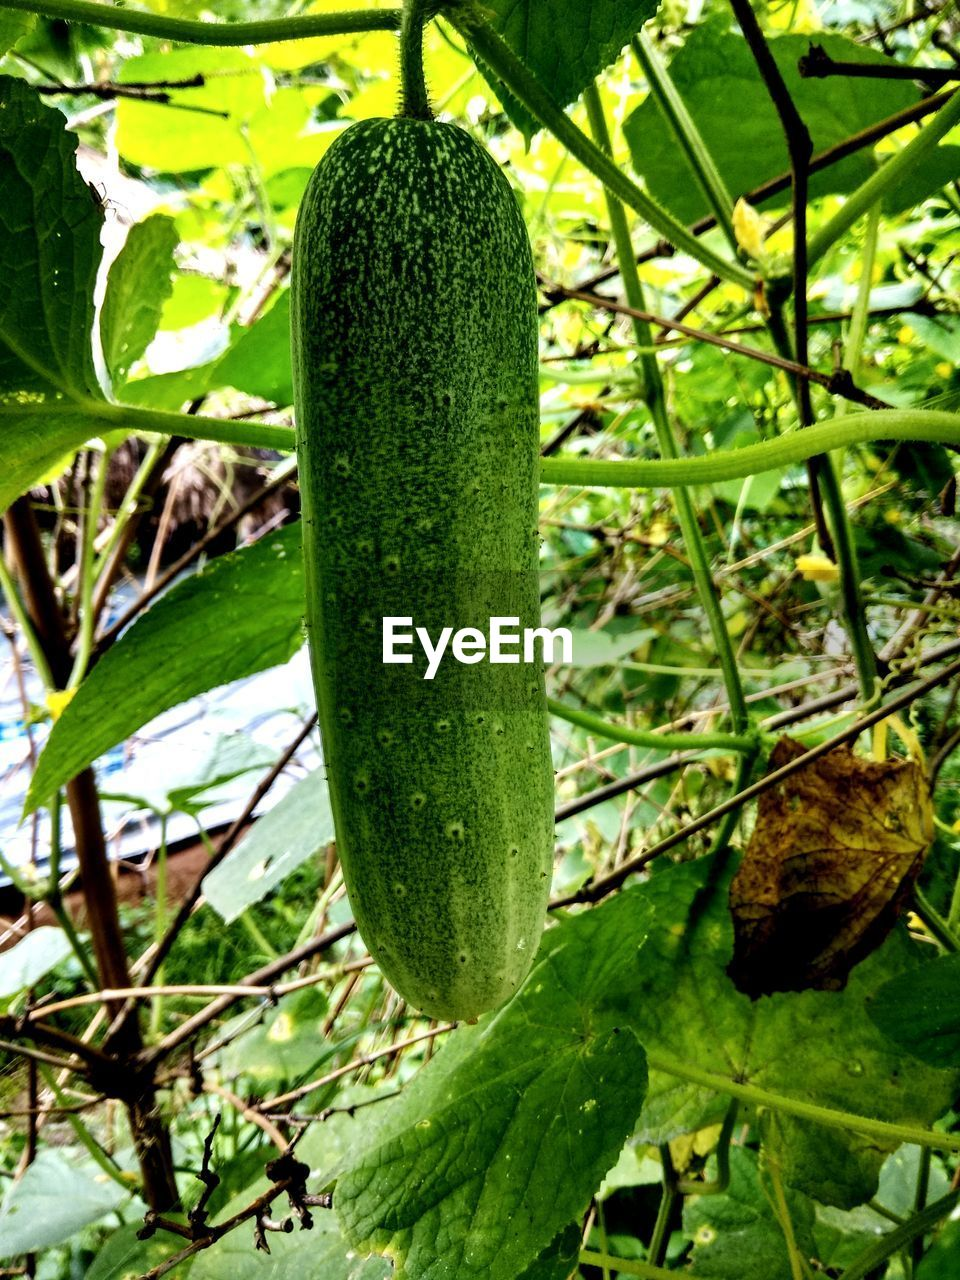 green color, growth, plant, leaf, plant part, food, freshness, no people, nature, food and drink, close-up, day, beauty in nature, outdoors, vegetable, wellbeing, healthy eating, focus on foreground, zucchini, agriculture